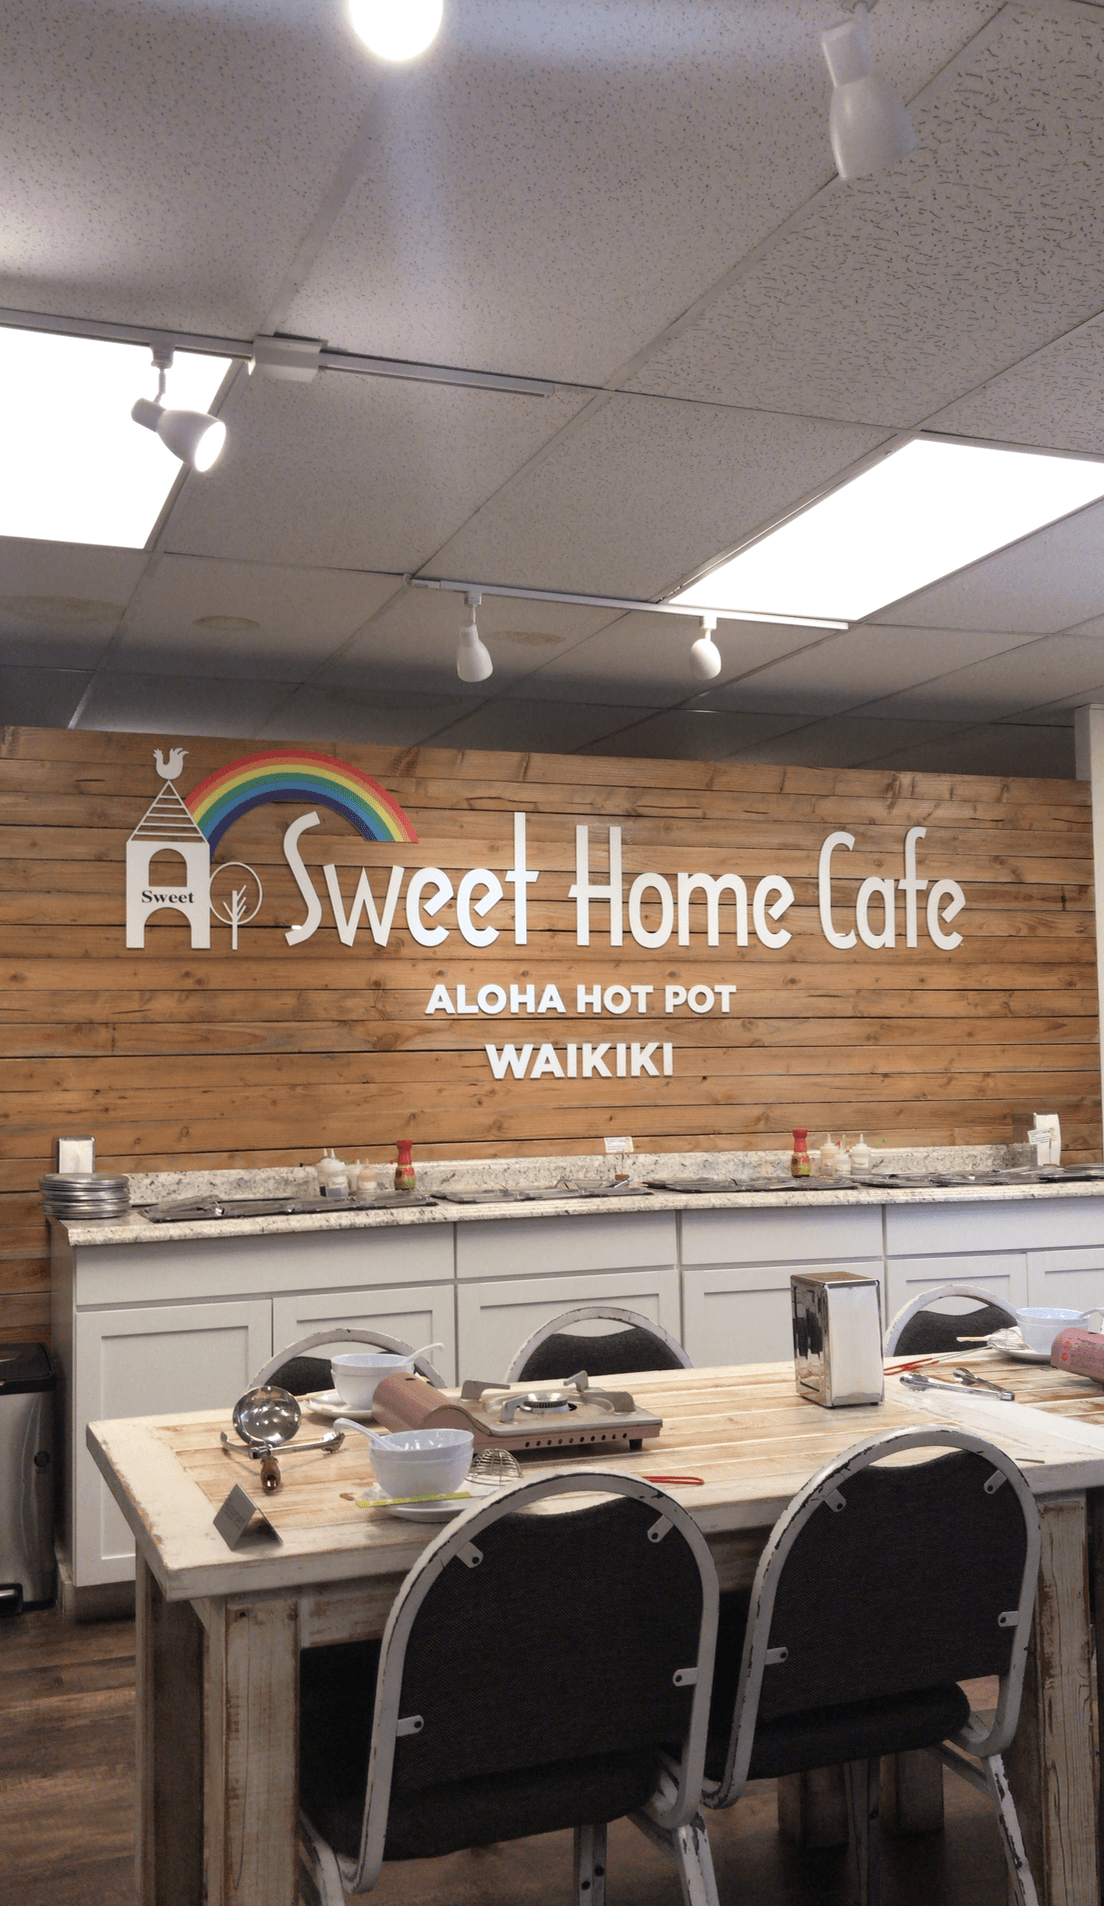 Sweet Home Cafe Aloha Hot Pot - Our Stay At Outrigger Waikiki Beach Resort | Outrigger Waikiki On The Beach - Outrigger Waikiki - Outrigger Waikiki Beach Resort - Outrigger Reef Waikiki - Outrigger Hotel Review - Waikiki Hotels - Waikiki Beach Hotels - Hawaii Vacation Planning - Where to stay on Oahu - Where to stay in Honolulu - Honolulu Vacation #hawaii #oahu #outriggerwaikiki